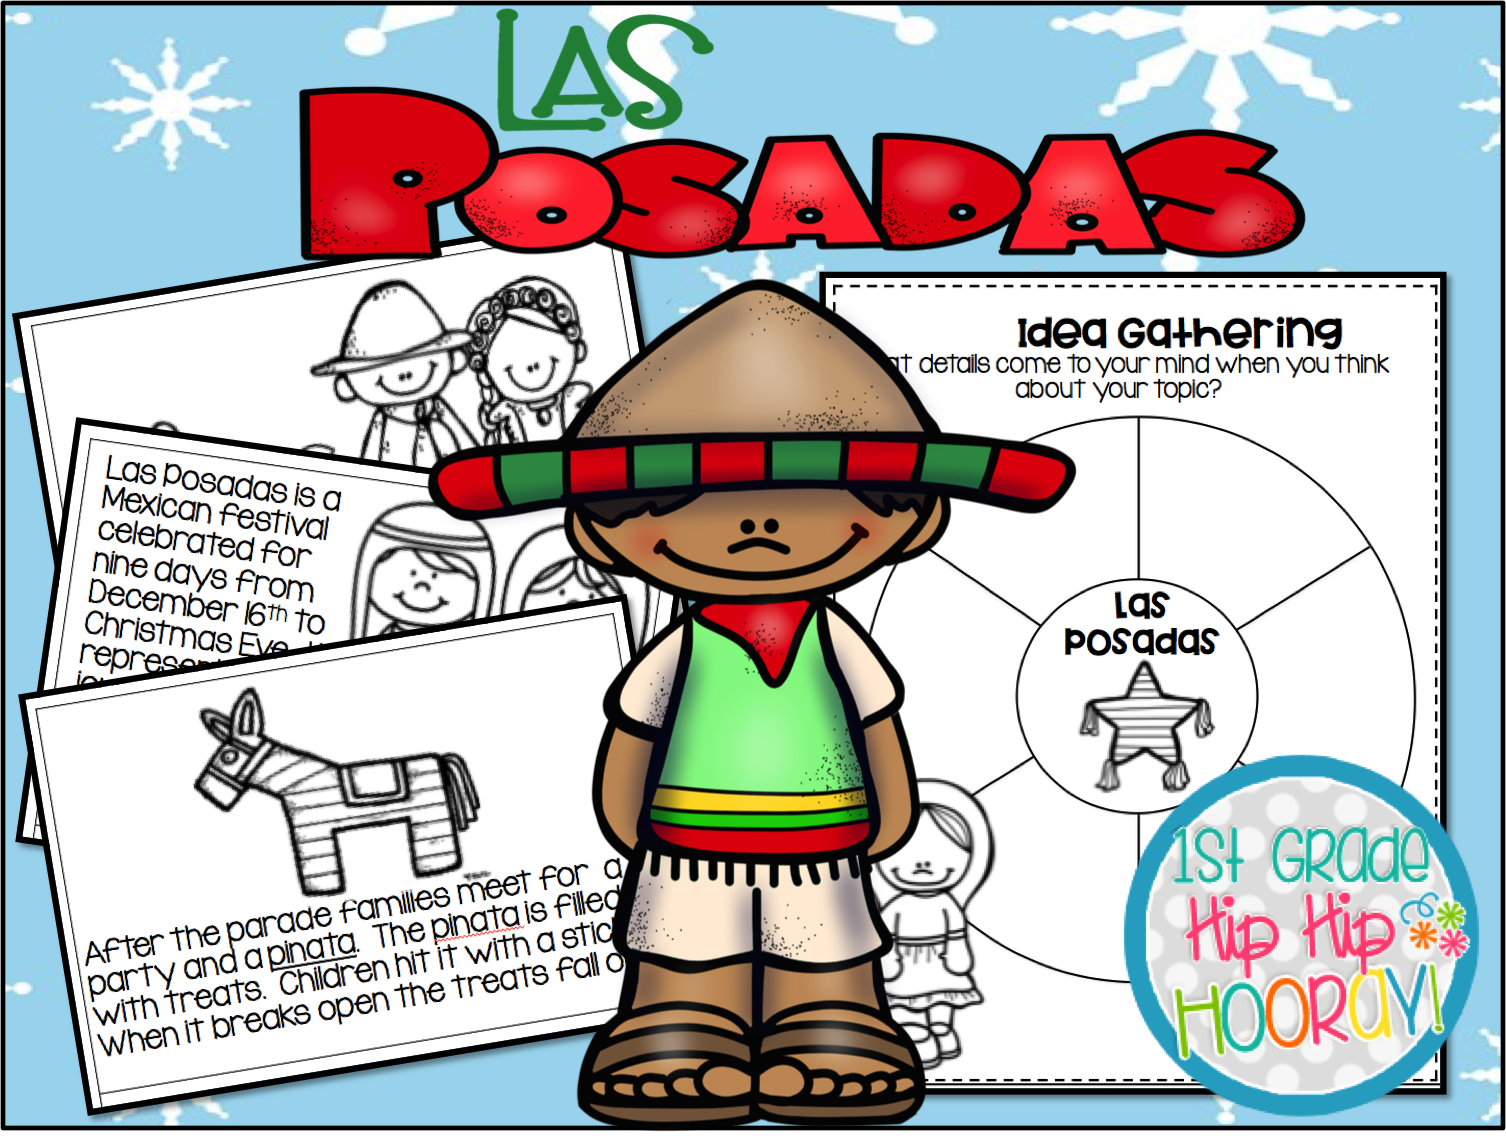 1506x1141 1st Grade Hip Hip Hooray! Holidays Around The World Las Posadas